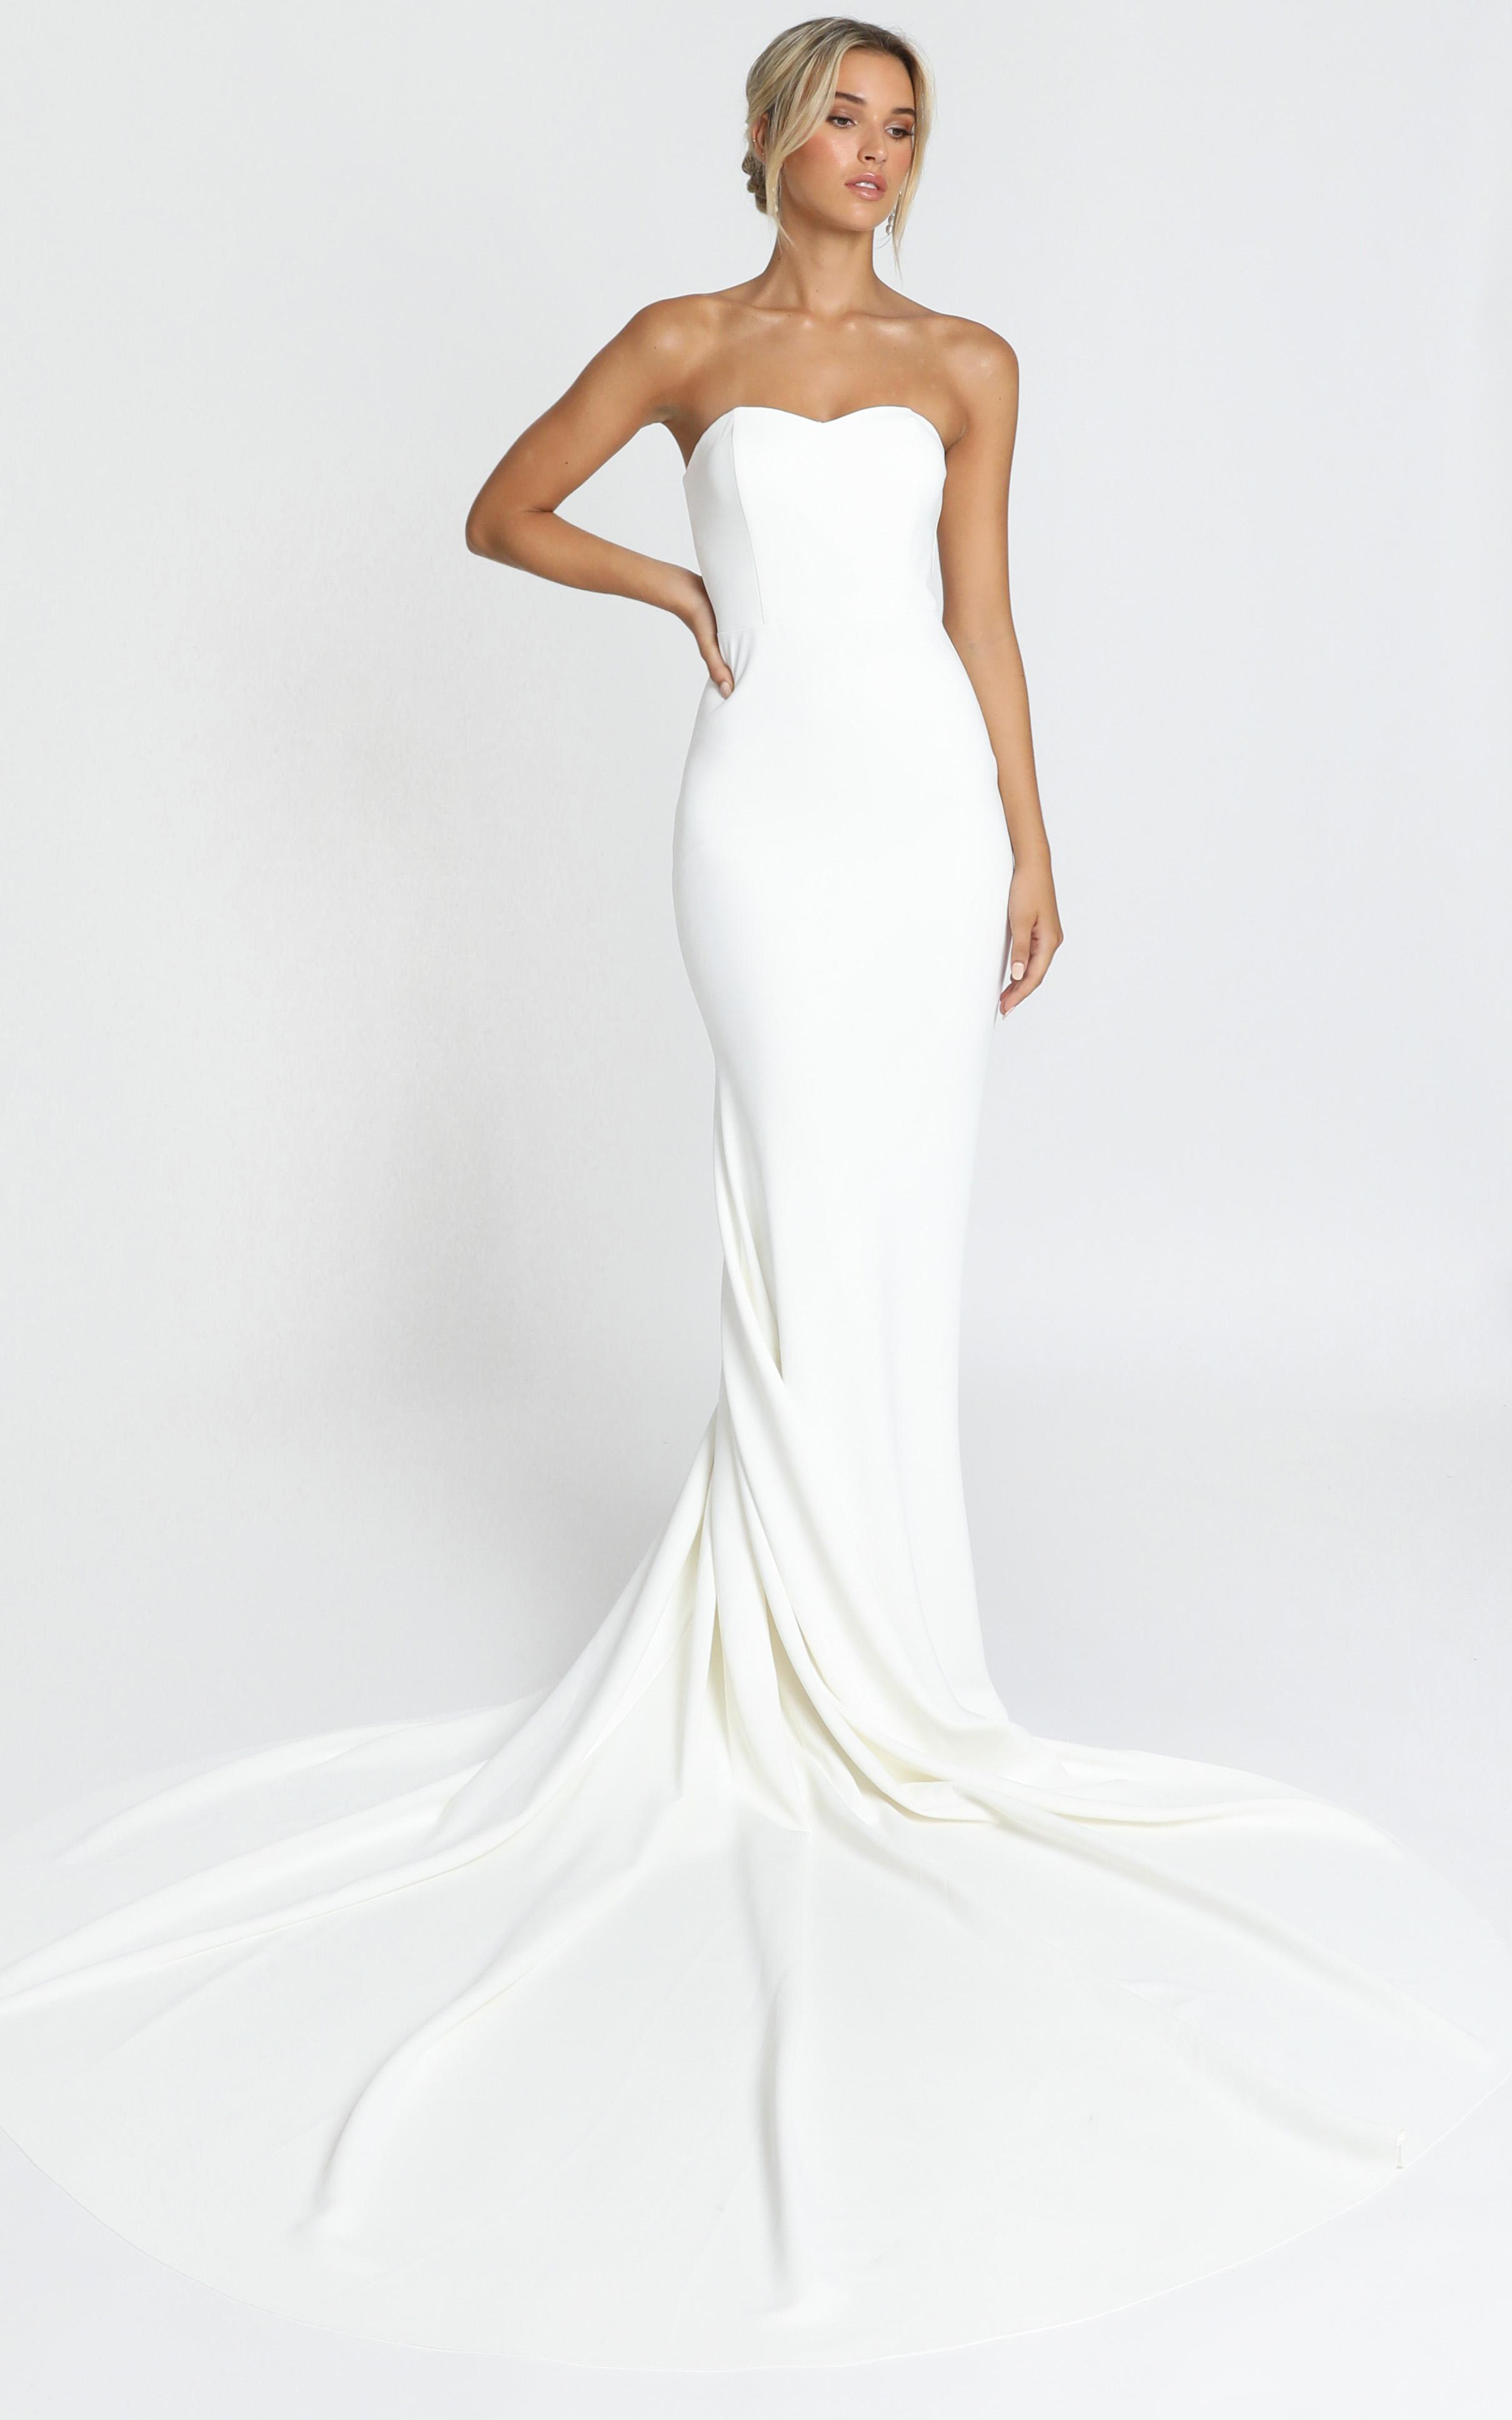 Vows For Life Gown in white - 20 (XXXXL), White, hi-res image number null